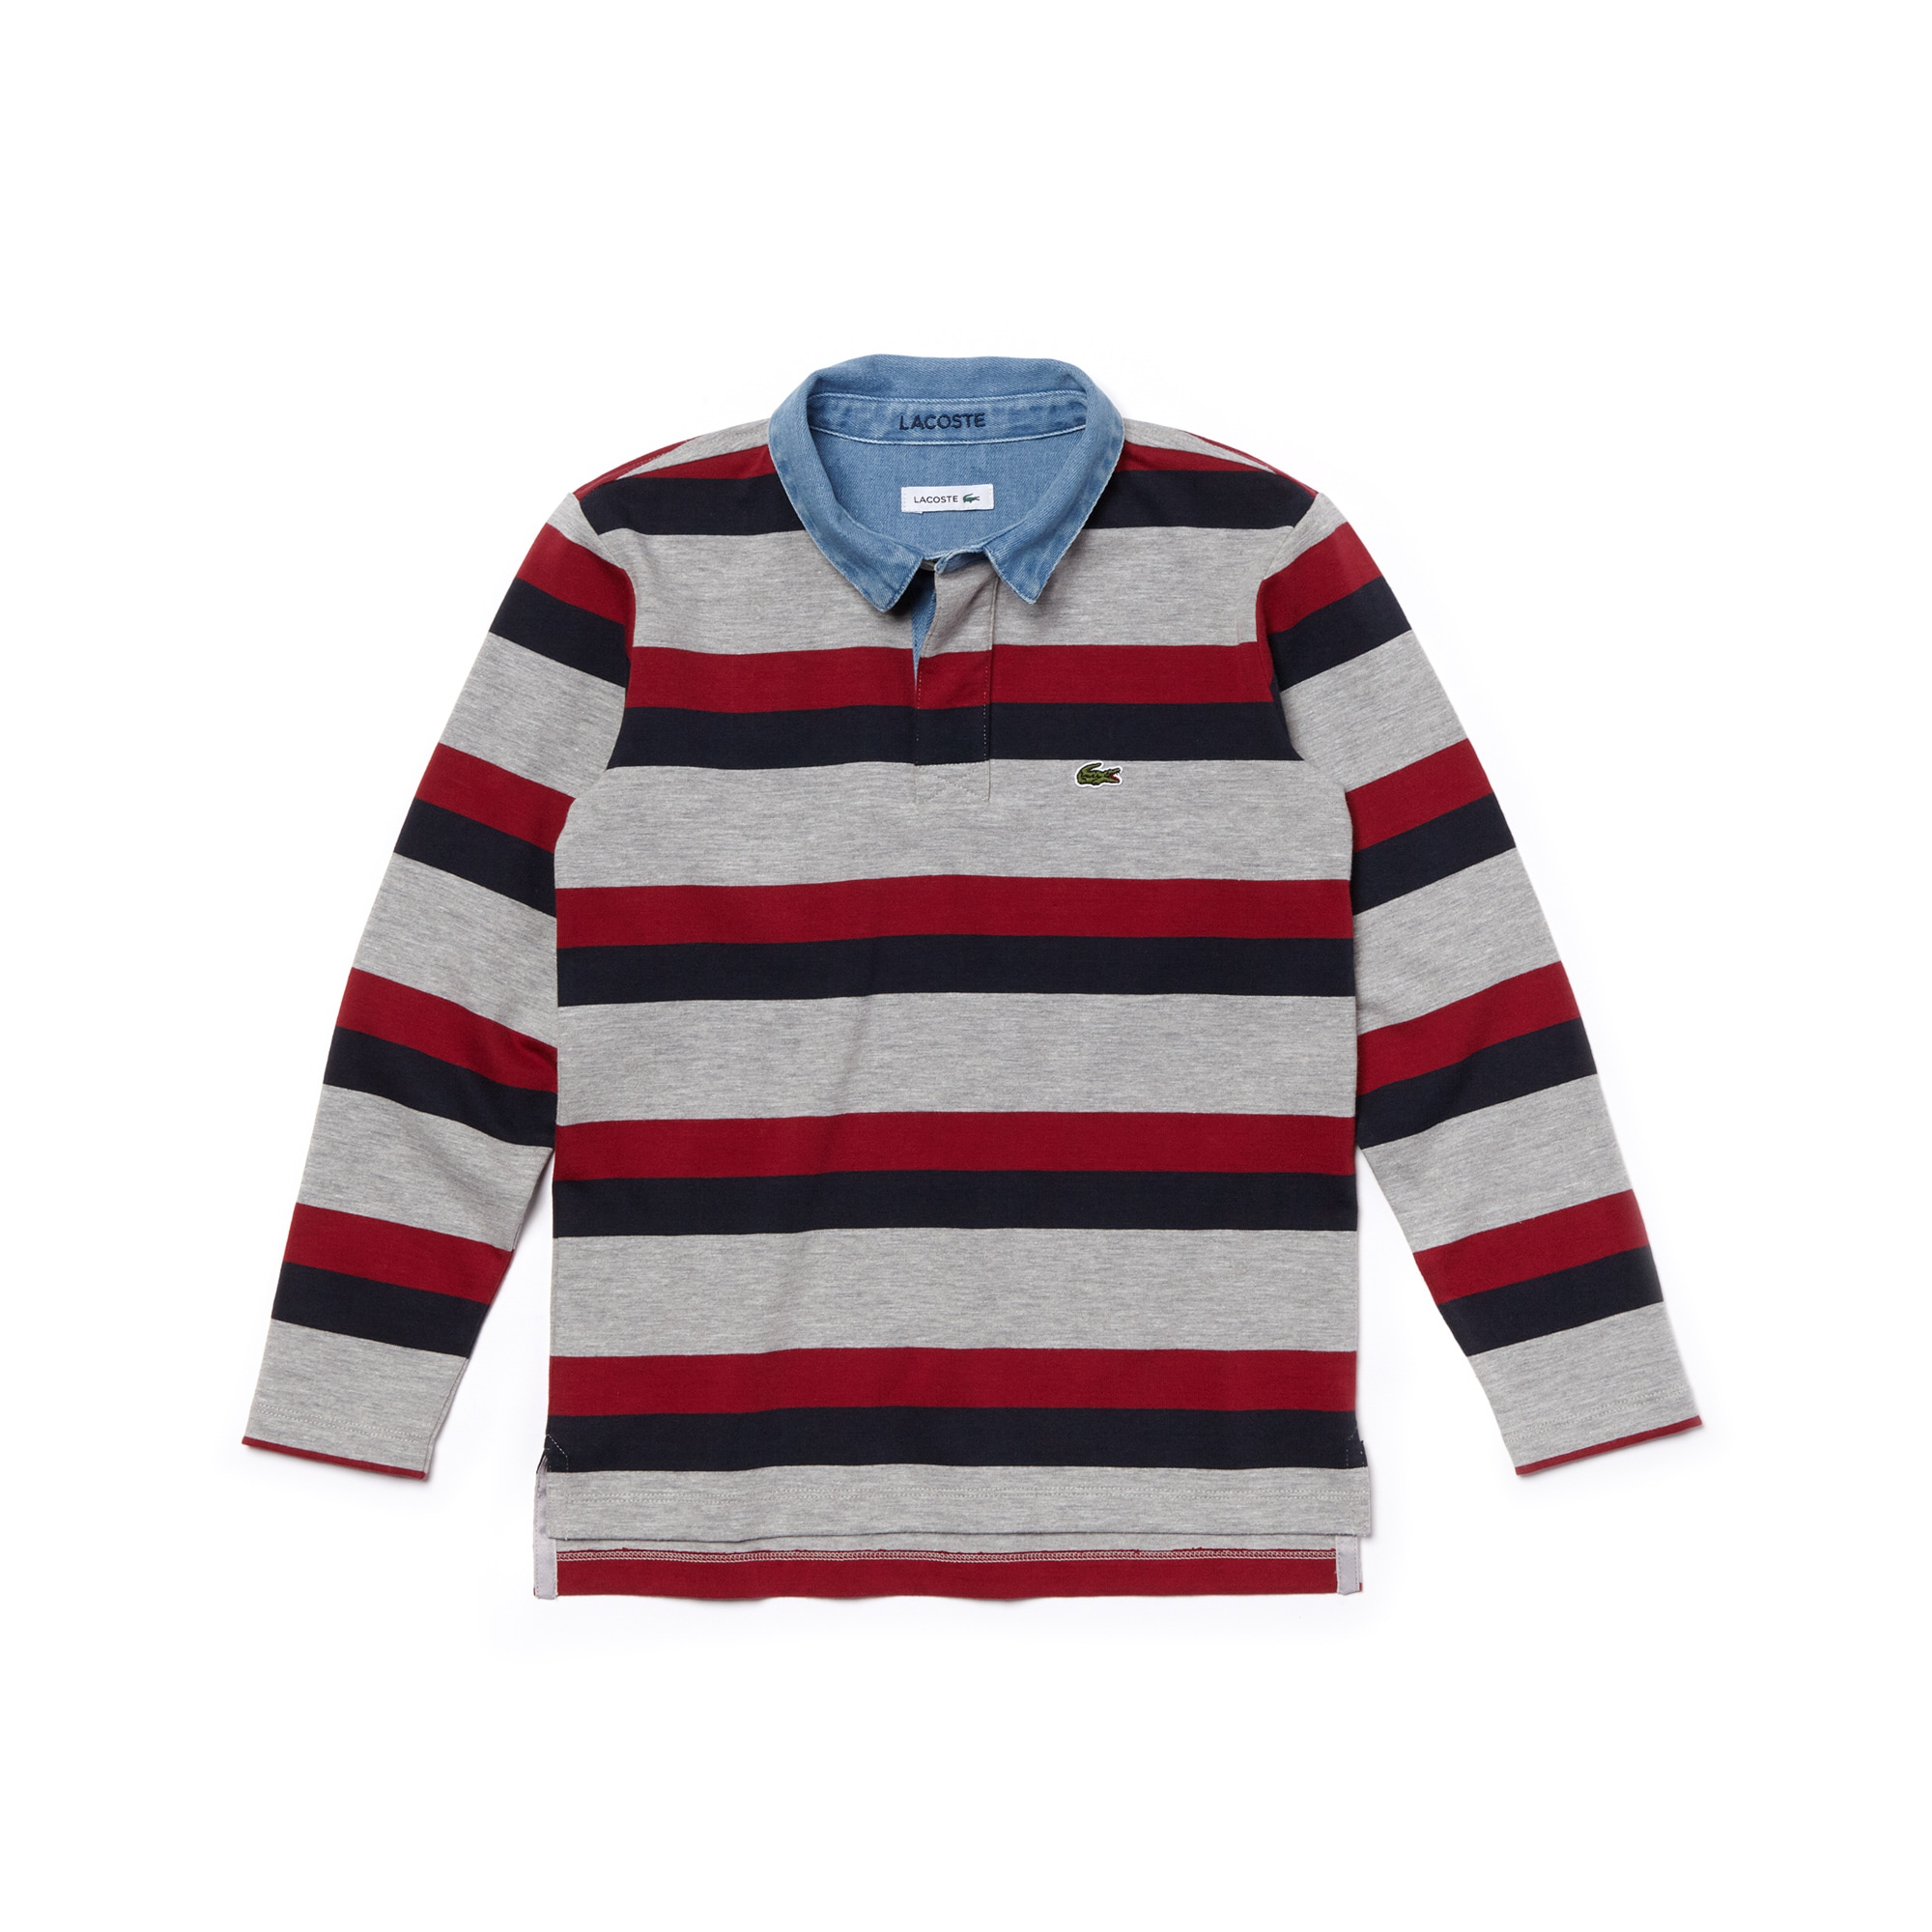 Boys' Striped Cotton Polo